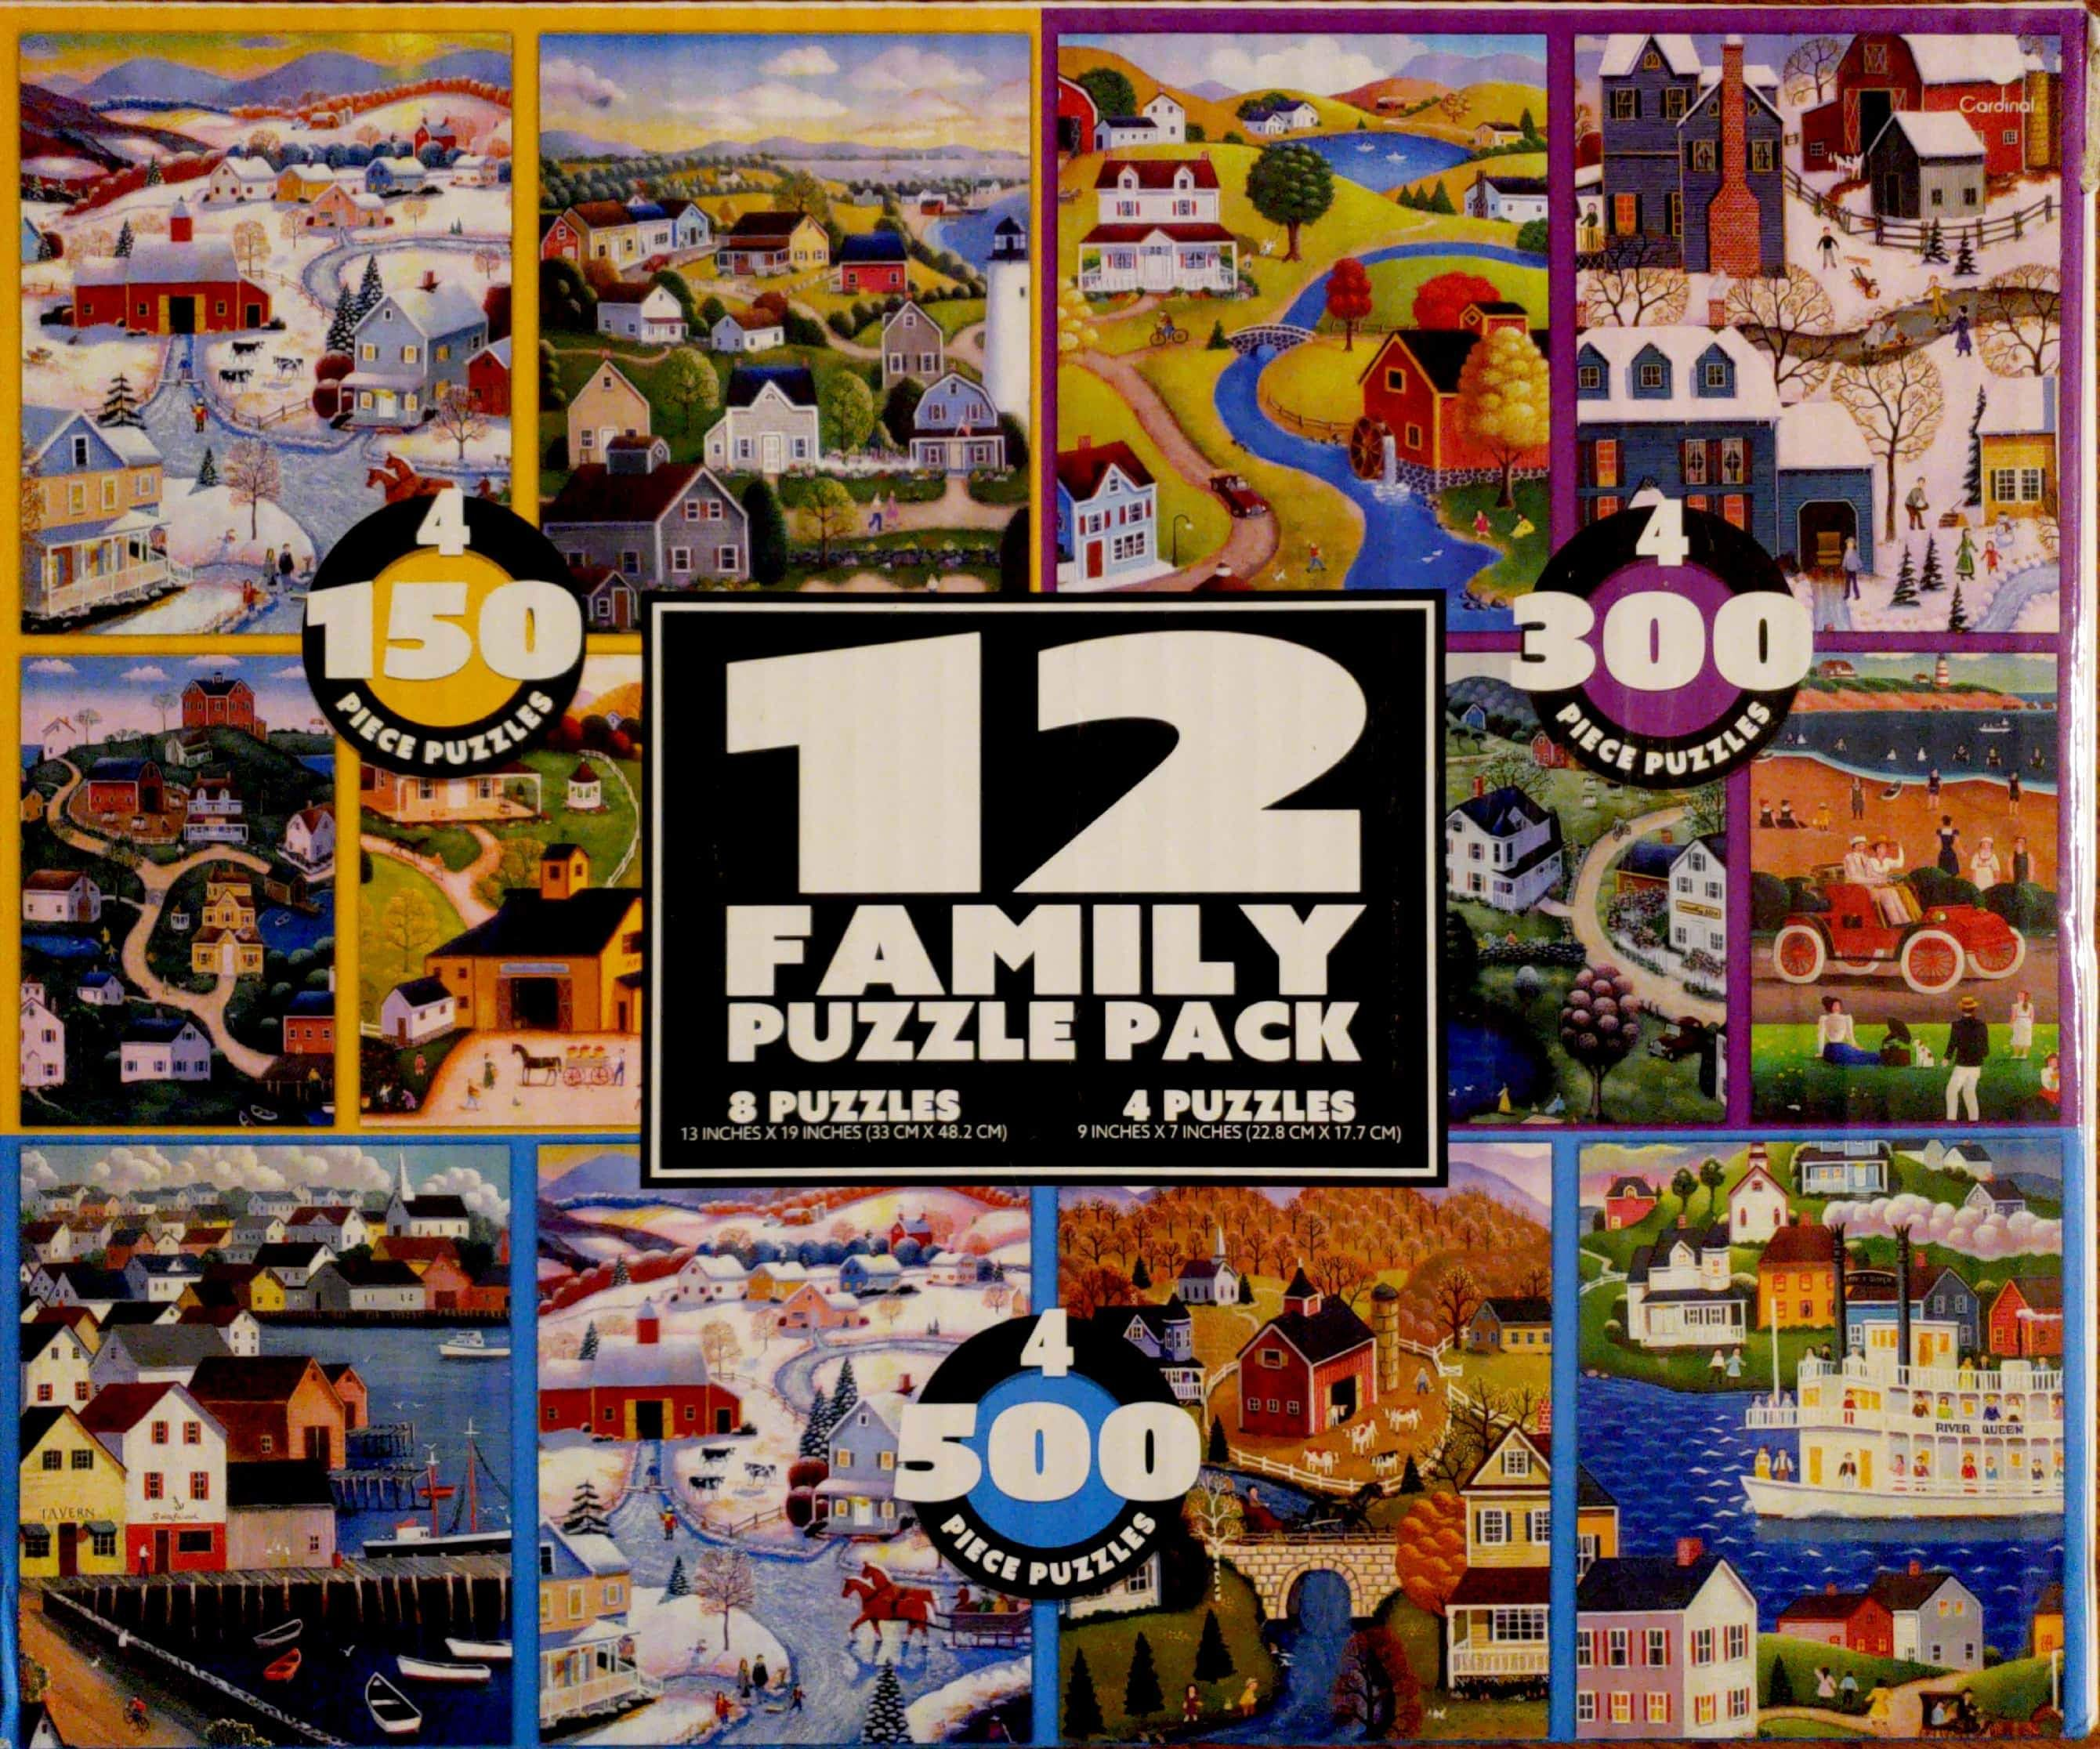 12 Family Puzzle Pack Walmart We Bought This 12 Puzzle Pack From Walmart For A Great Price Approx 10 But They Do No Family Puzzles Puzzle Pictures Puzzle